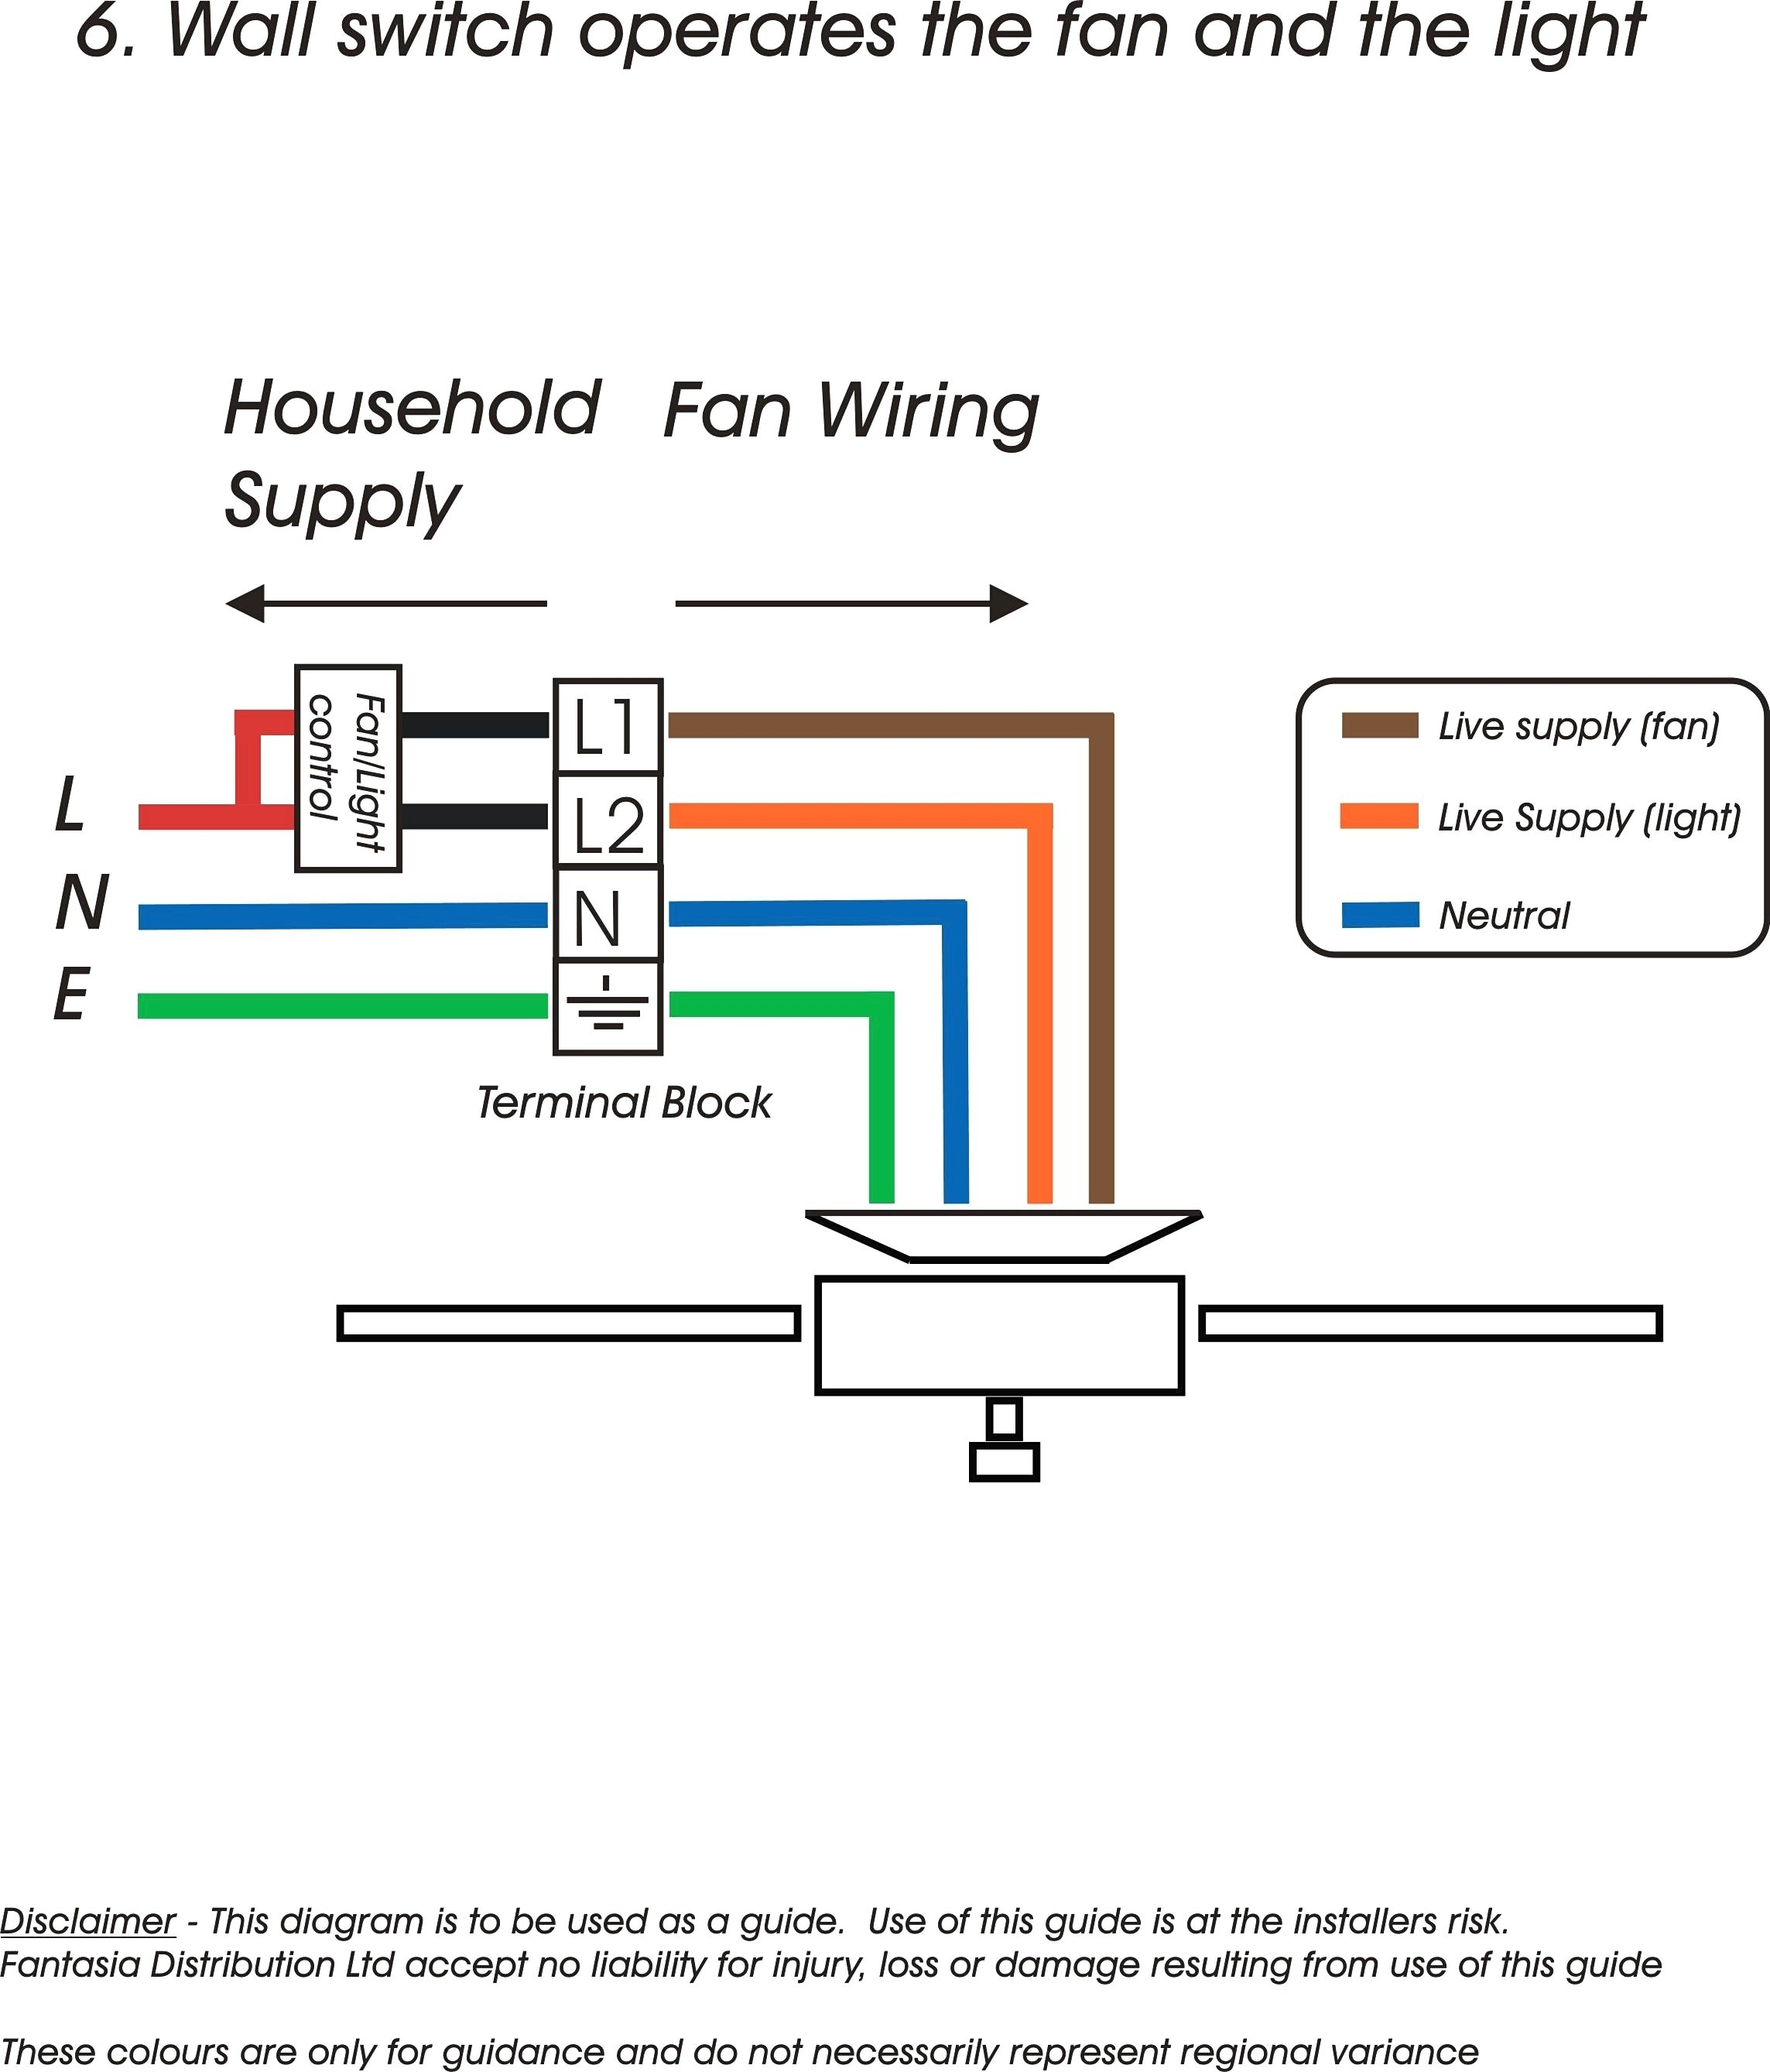 electronic ballast wiring diagram Collection-Wiring Diagram Sheets Detail Name fluorescent emergency ballast wiring diagram – emergency ballast 11-c